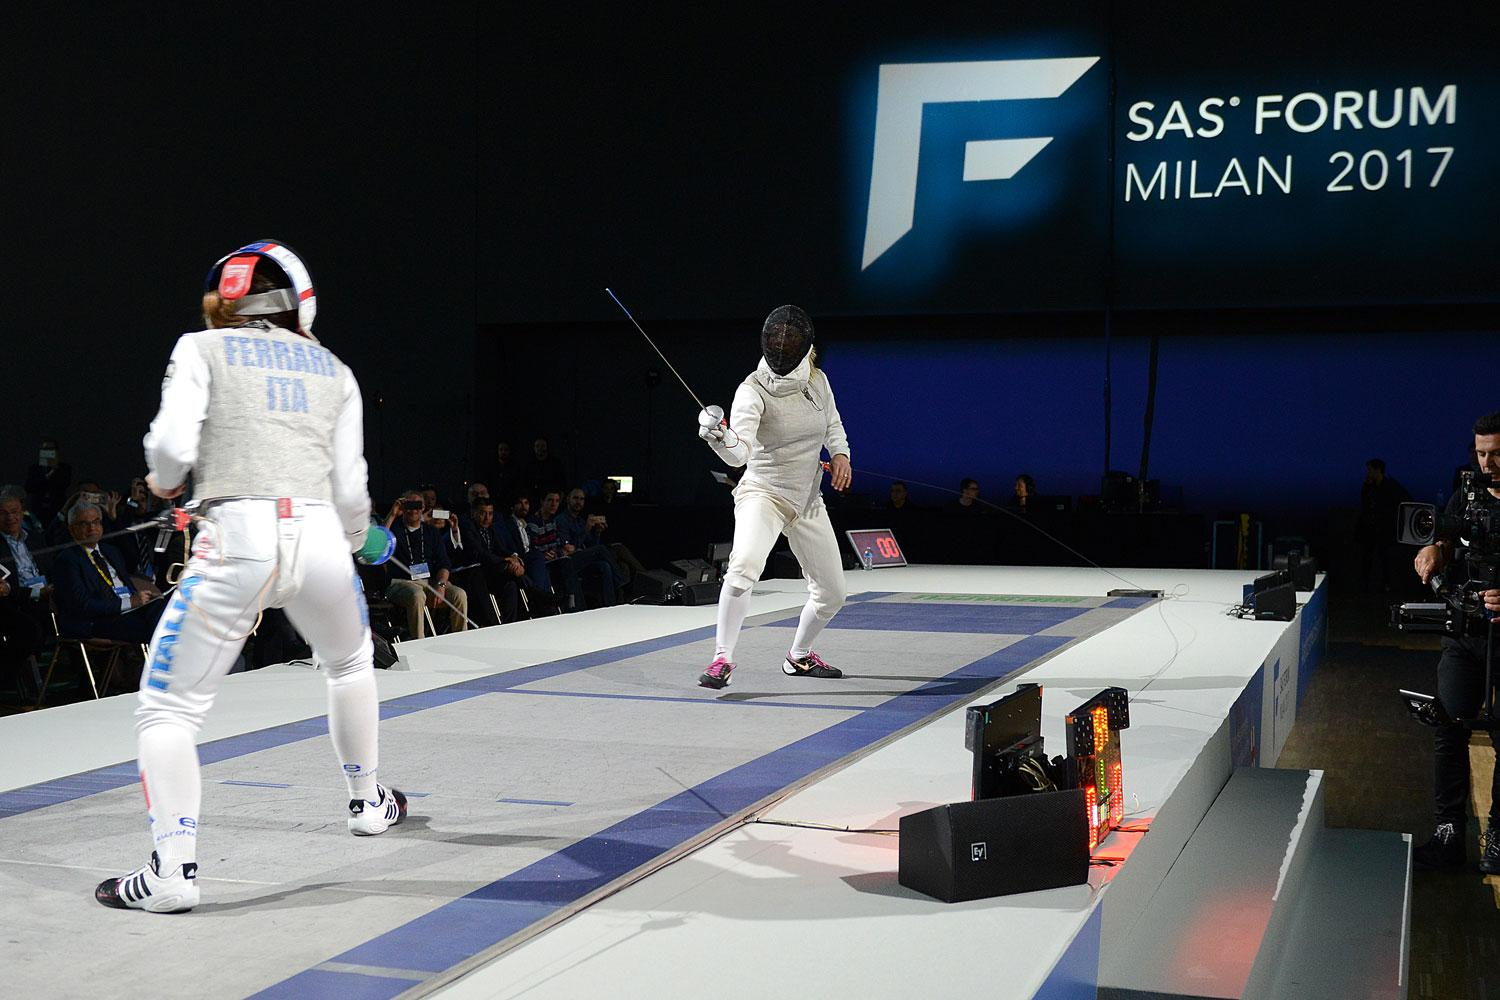 Granbassi and Ferrari fencing live at SAS Forum Milan 2017